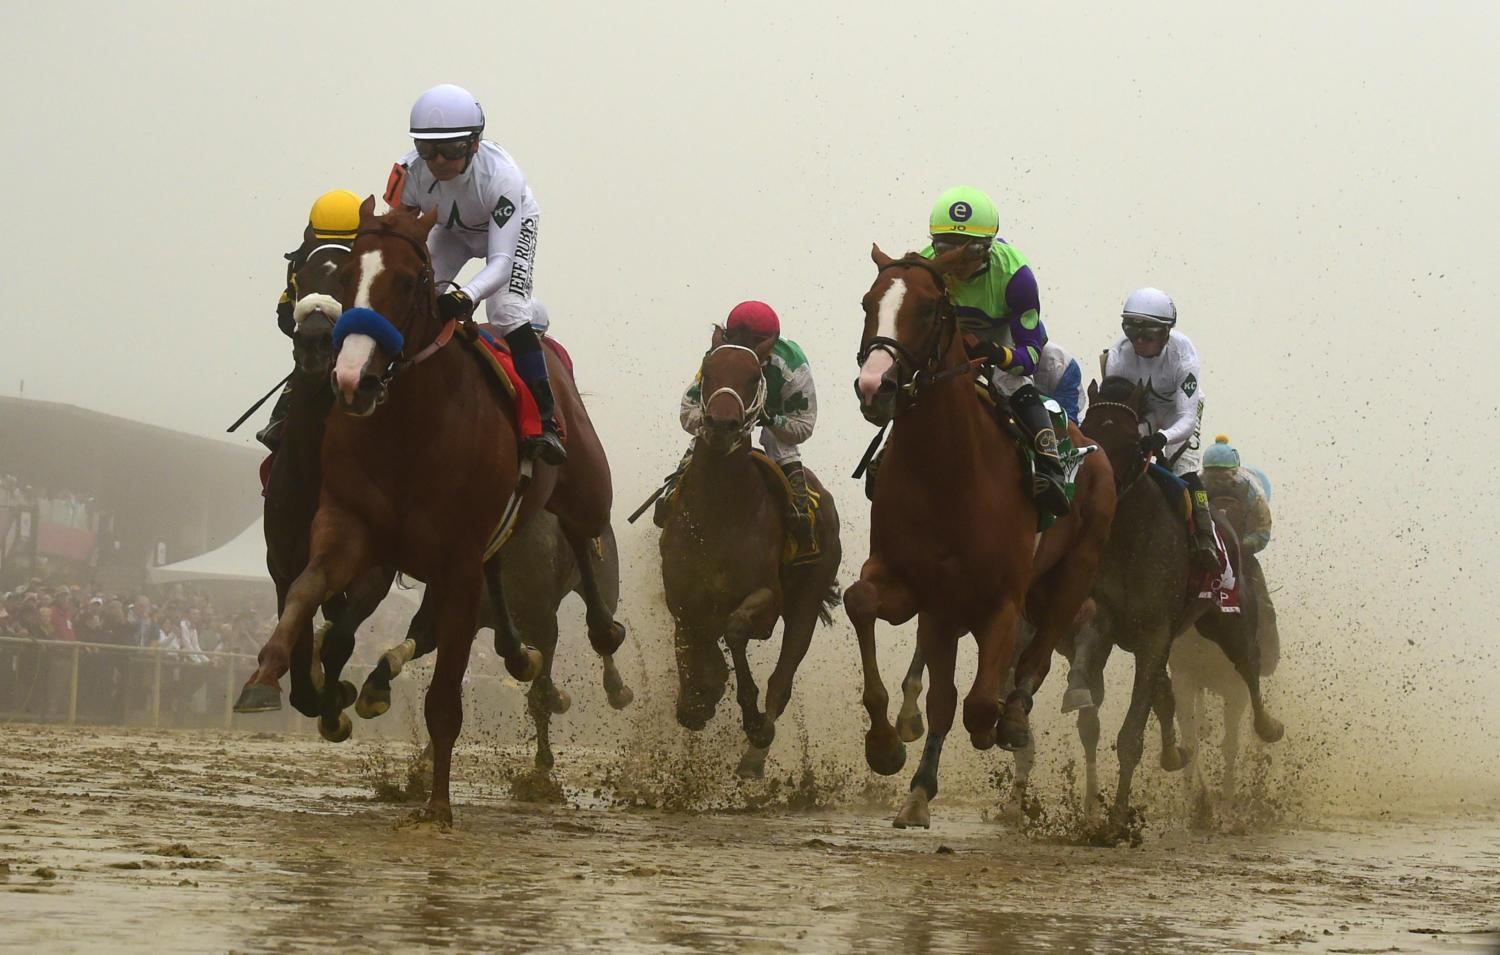 Justify ridden by Mike E. Smith won the 143rd Preakness Stakes Saturday, May 19. Despite the muddy and foggy conditions in Baltimore, Justify claimed the second leg of the Triple Crown. (Photo courtesy of Kenneth K. Lam/Baltimore Sun/TNS)